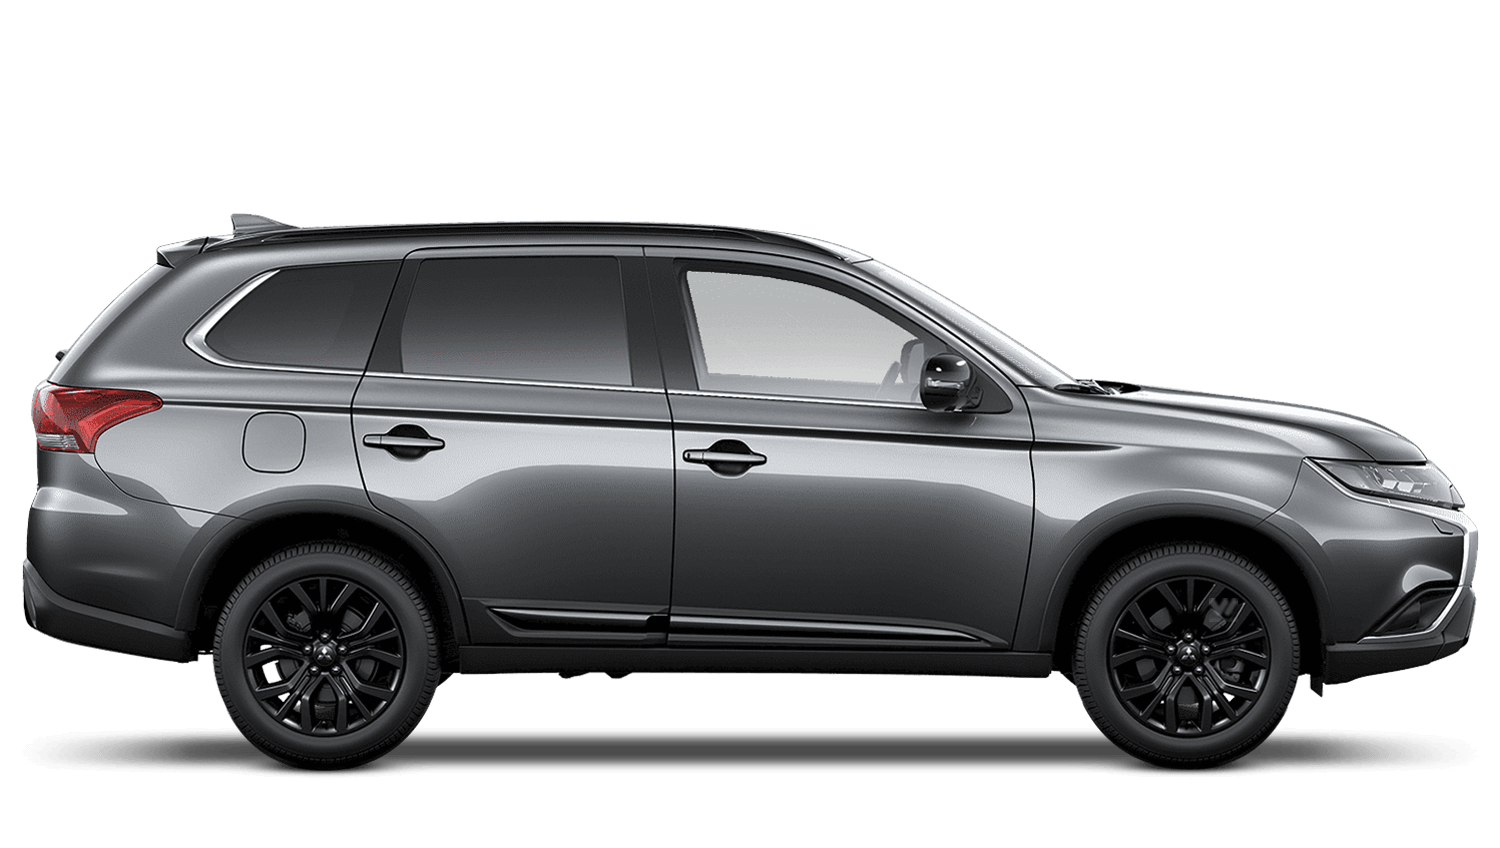 Atlantic Grey (Metallic) Mitsubishi Outlander